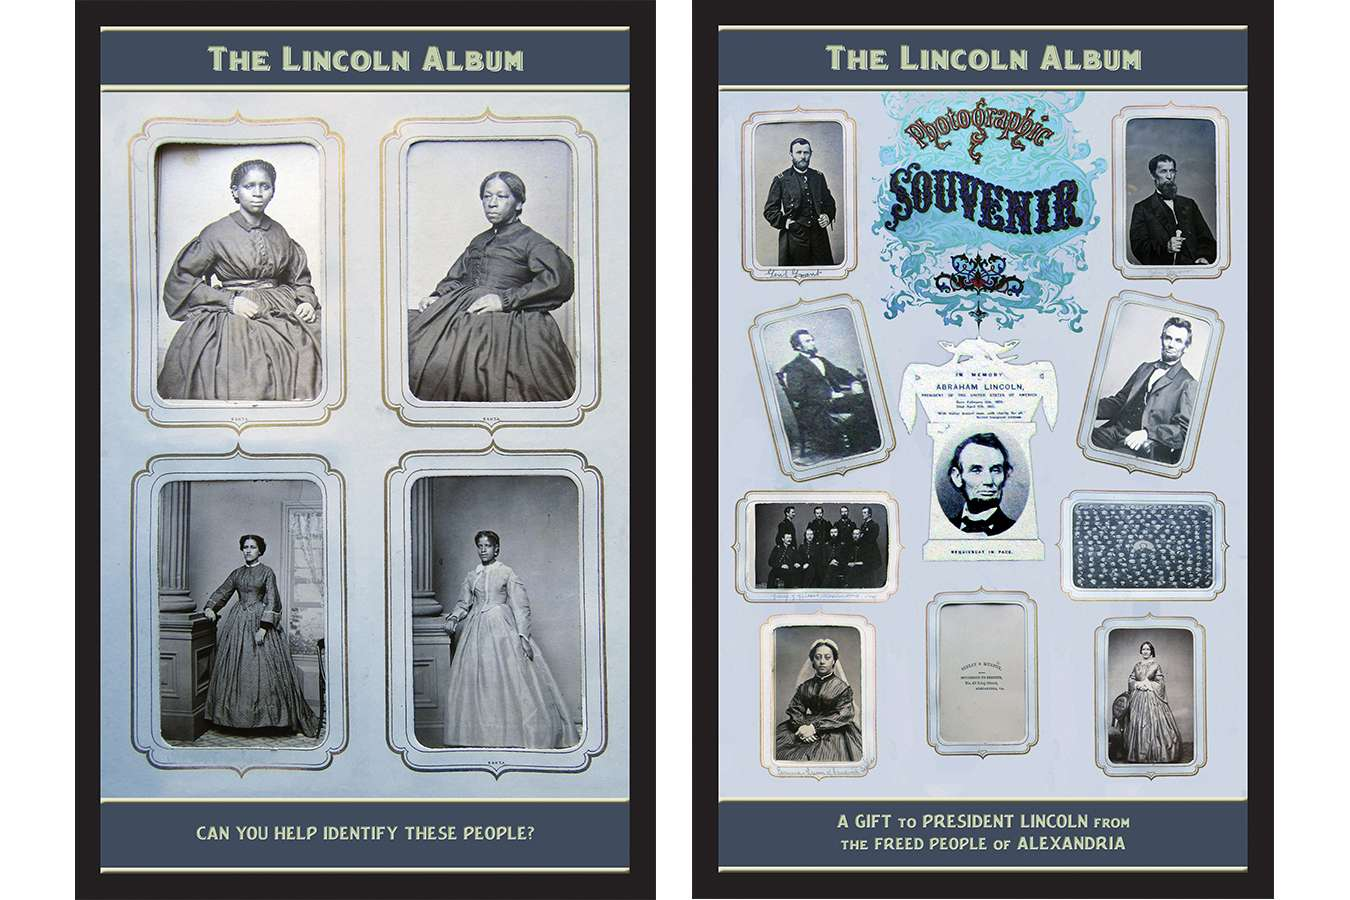 3 Linc Alb : This Lincoln Album contains many pages of souvenir photos, and Cartes de Visite